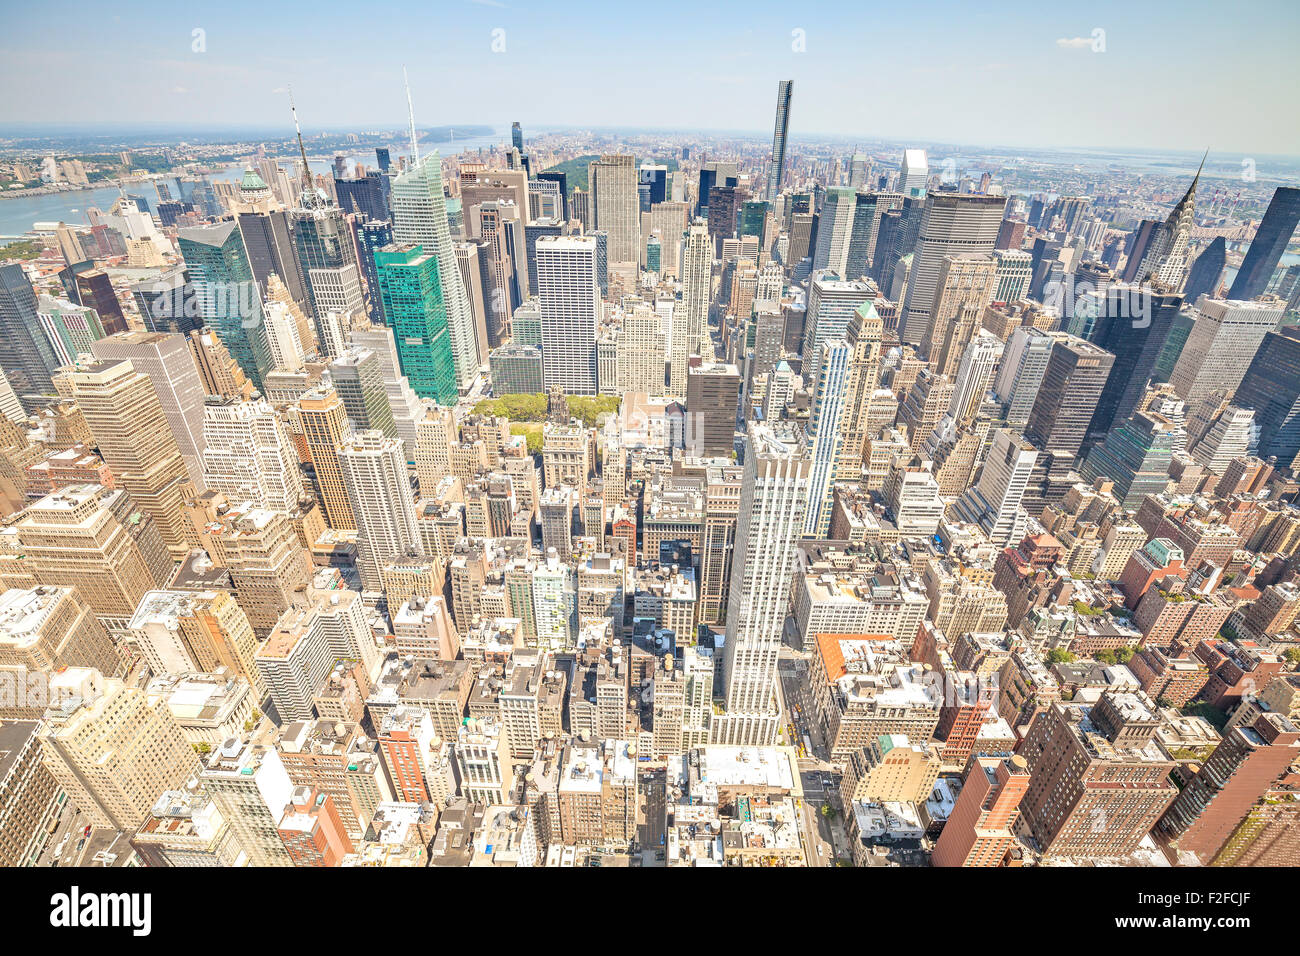 Aerial view picture of Manhattan, New York City downtown, USA. - Stock Image